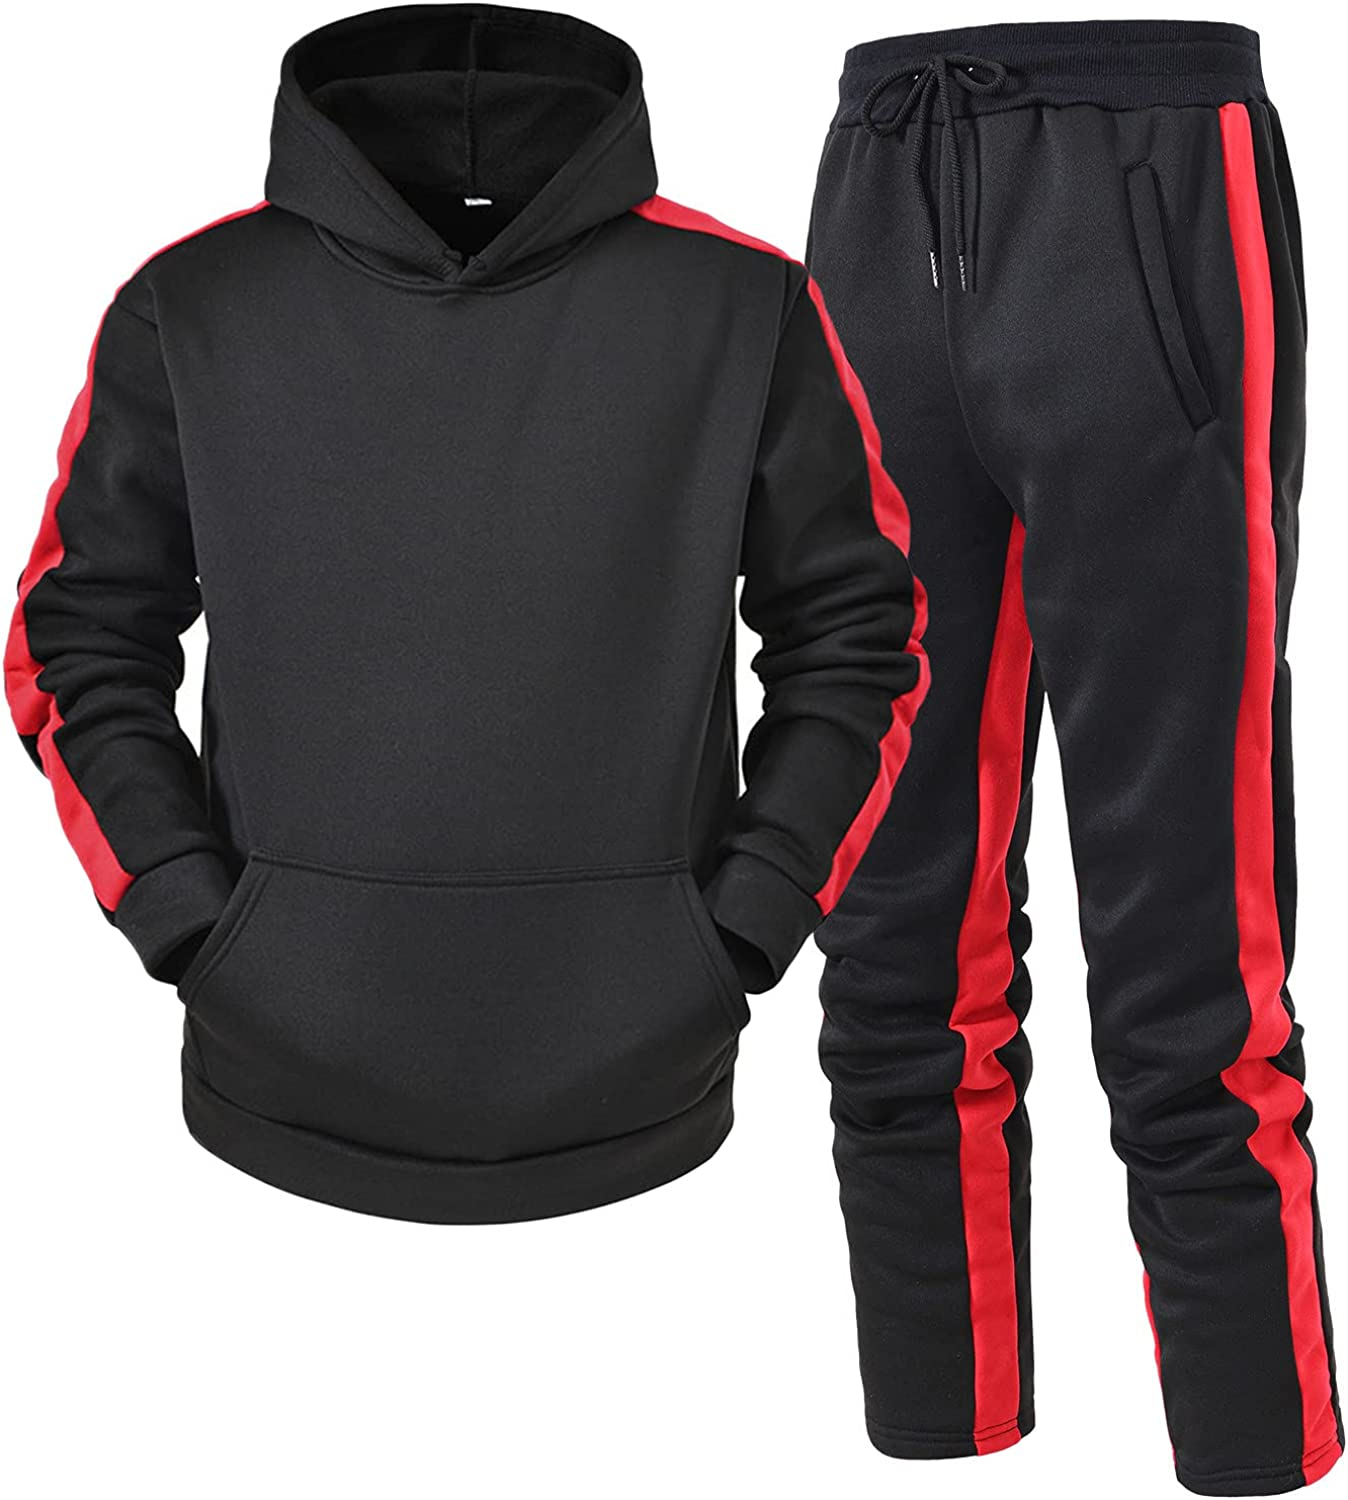 Mens Sweatsuits 2 Super sale Piece with Hoodie 2021new shipping free shipping Block Tracksuit Color Sets C